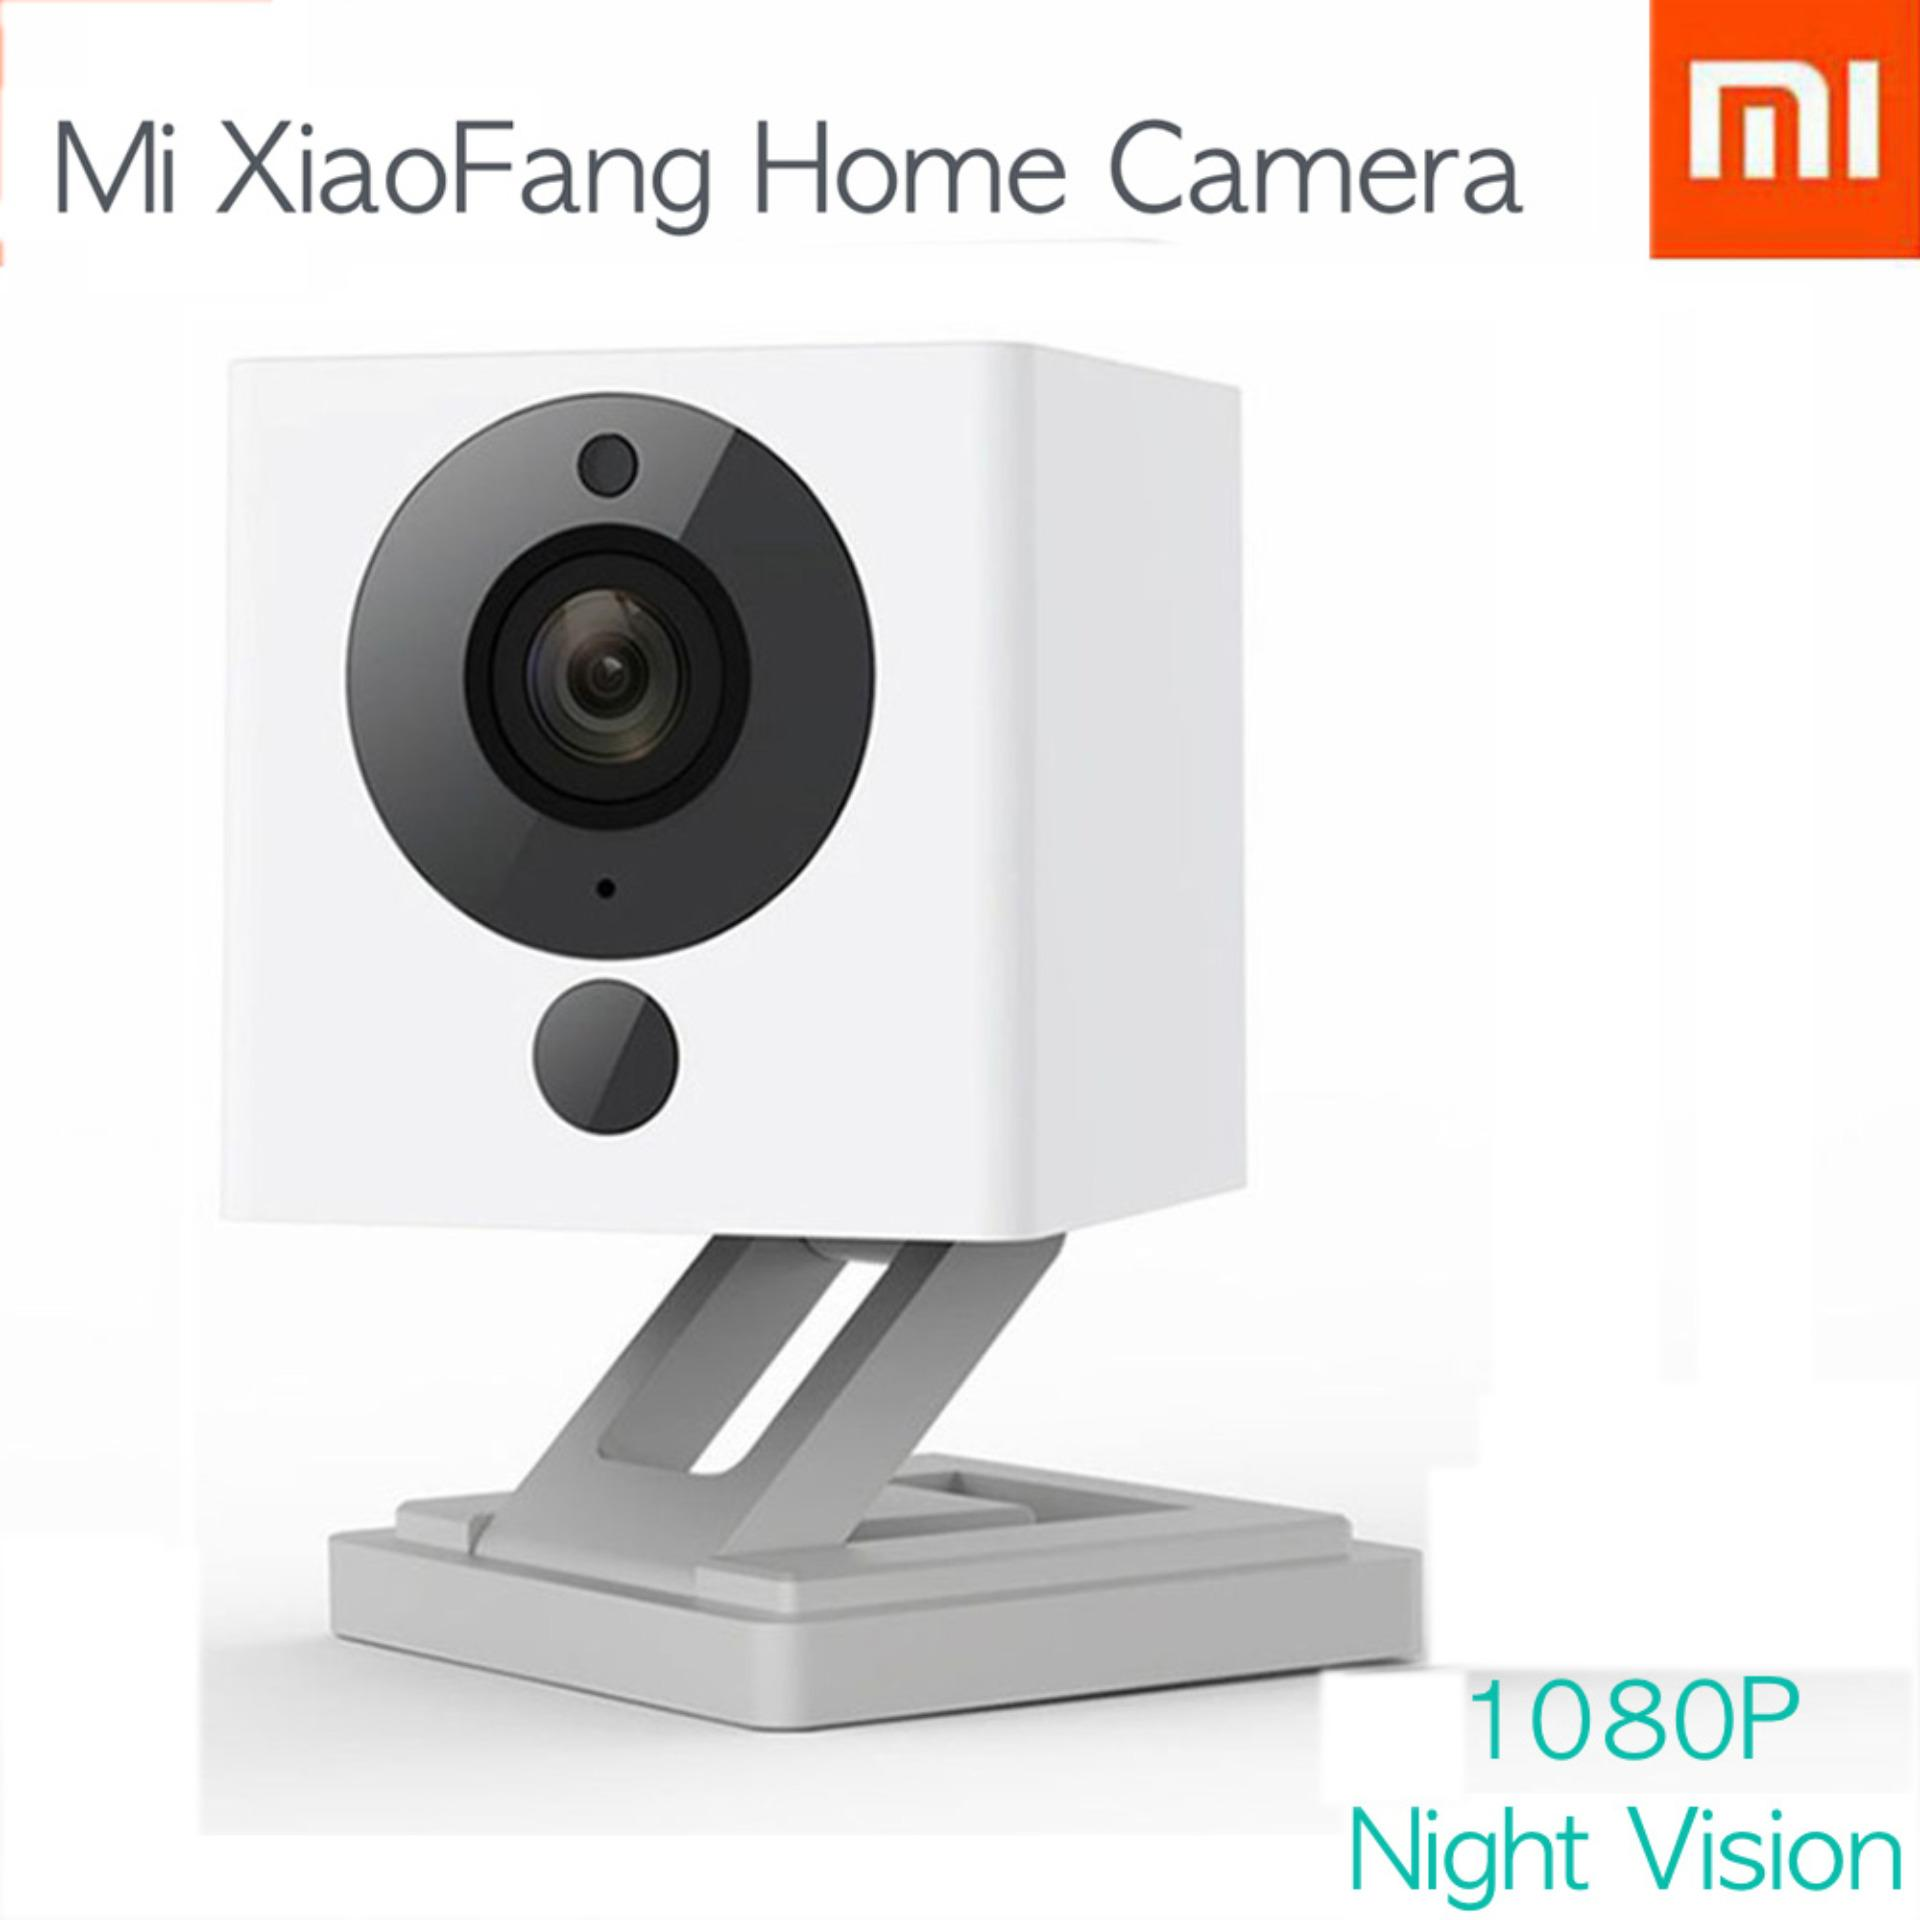 Kualitas Xiaomi Xiaofang Small Squarebox Smart 1080P Ip Cctv Wifi Camera Putih Xiaomi